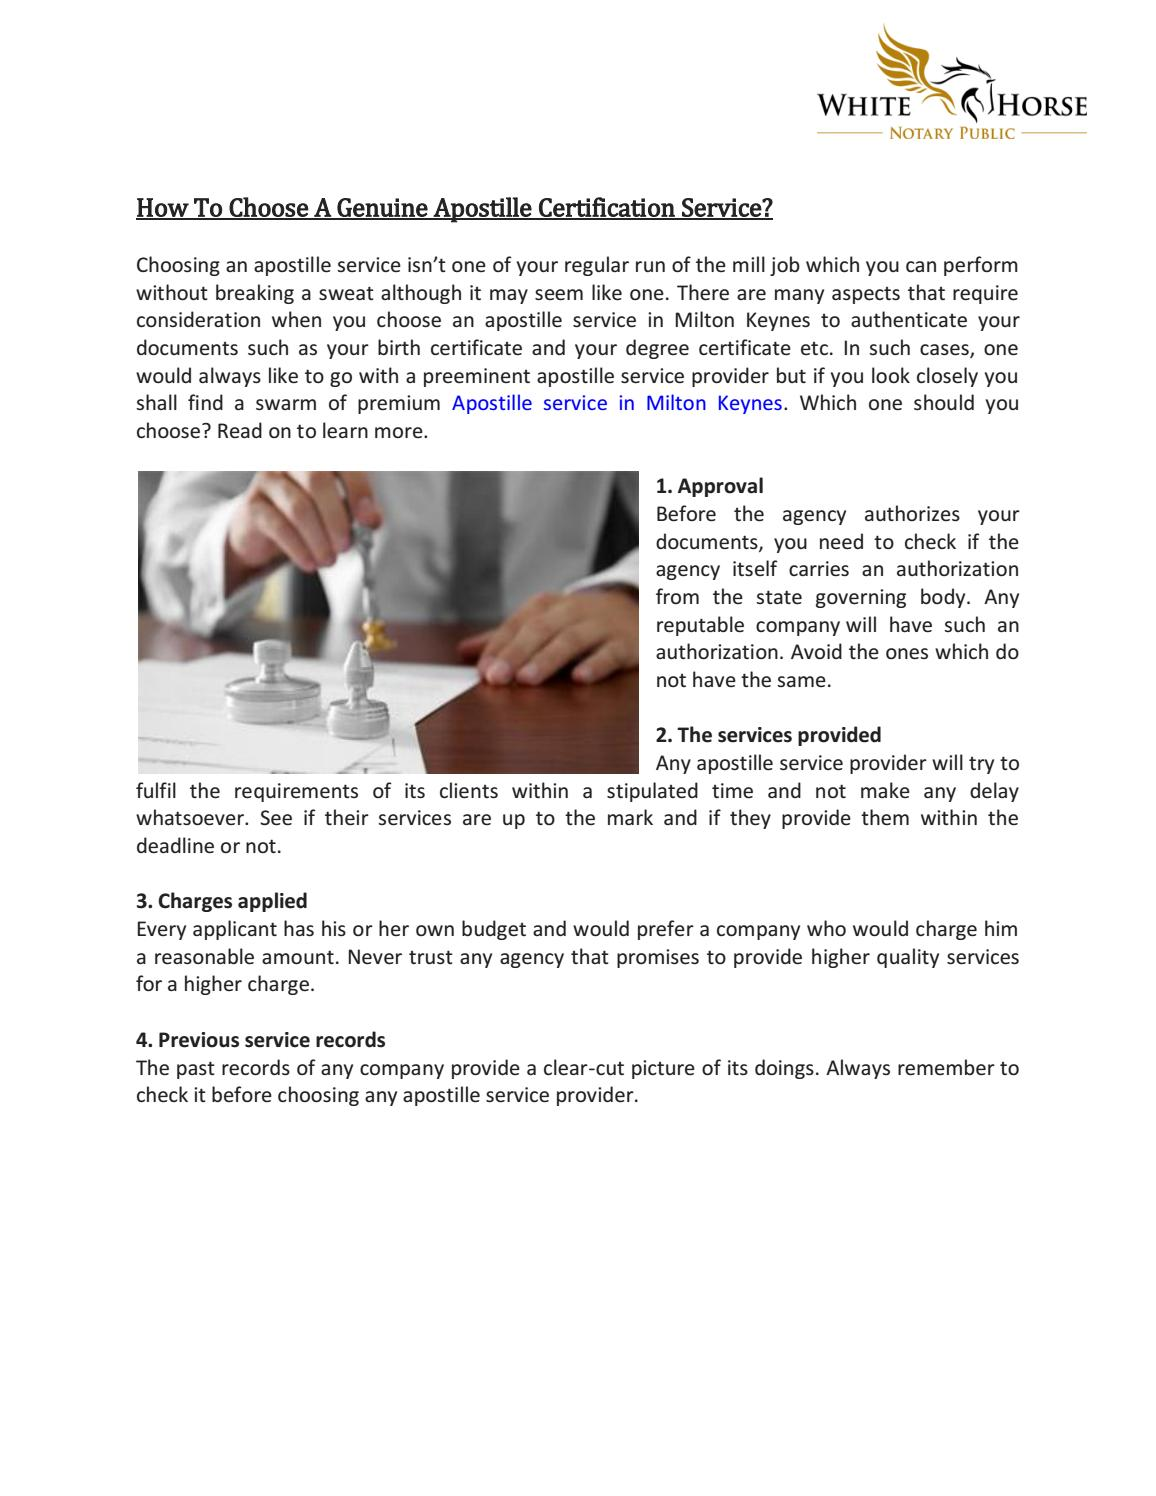 How To Choose A Genuine Apostille Certification Service By Lewis